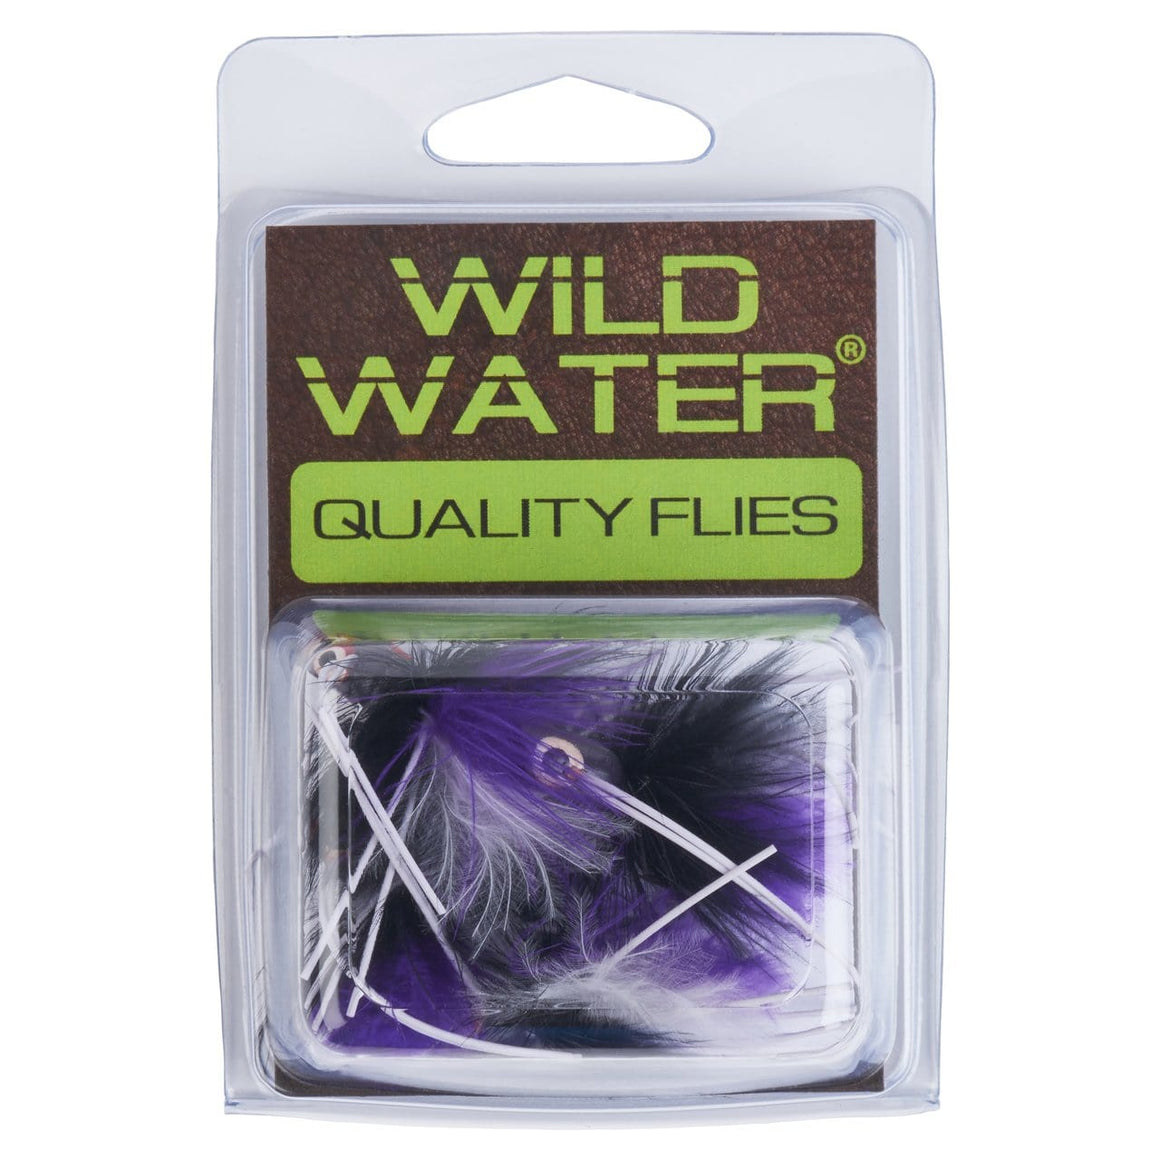 Wild Water Purple and Black Little Fatty by Pultz Poppers, Size 8, Qty. 4 - Wild Water Fly Fishing